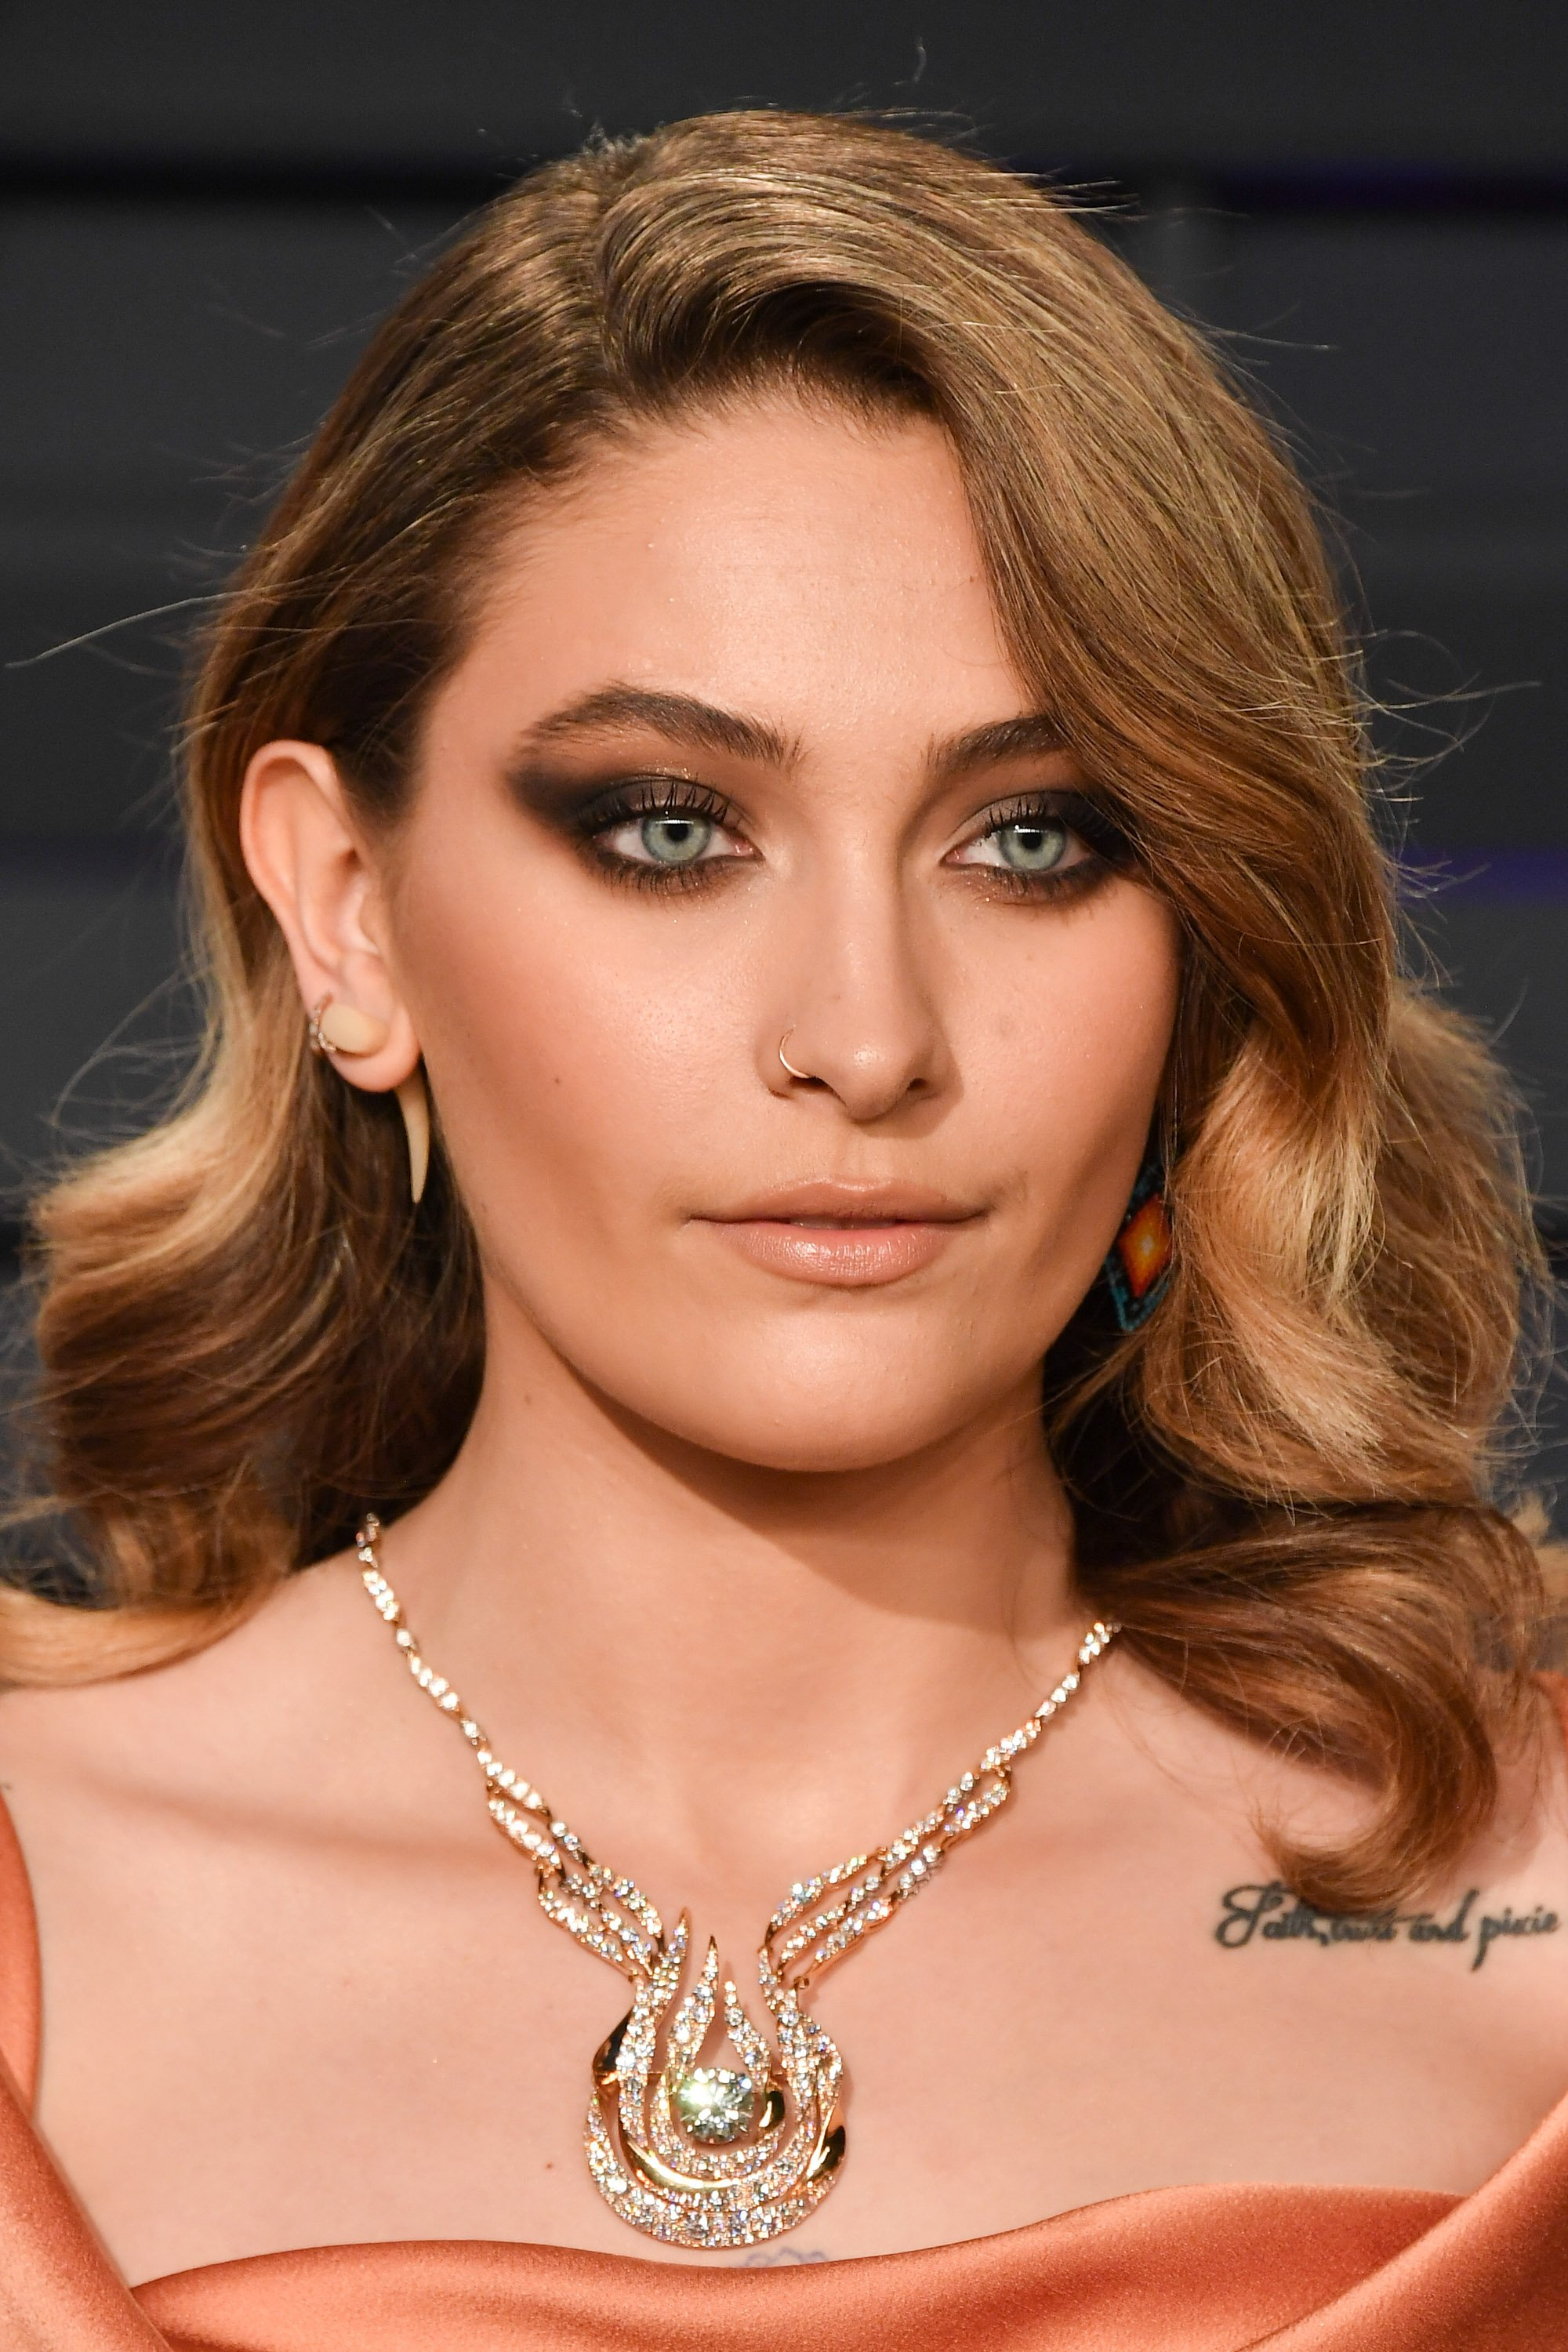 Paris Jackson attends the 2019 Vanity Fair Oscar Party at Wallis Annenberg Center on February 24, 2019 in Beverly Hills, California   Photo: Getty Images